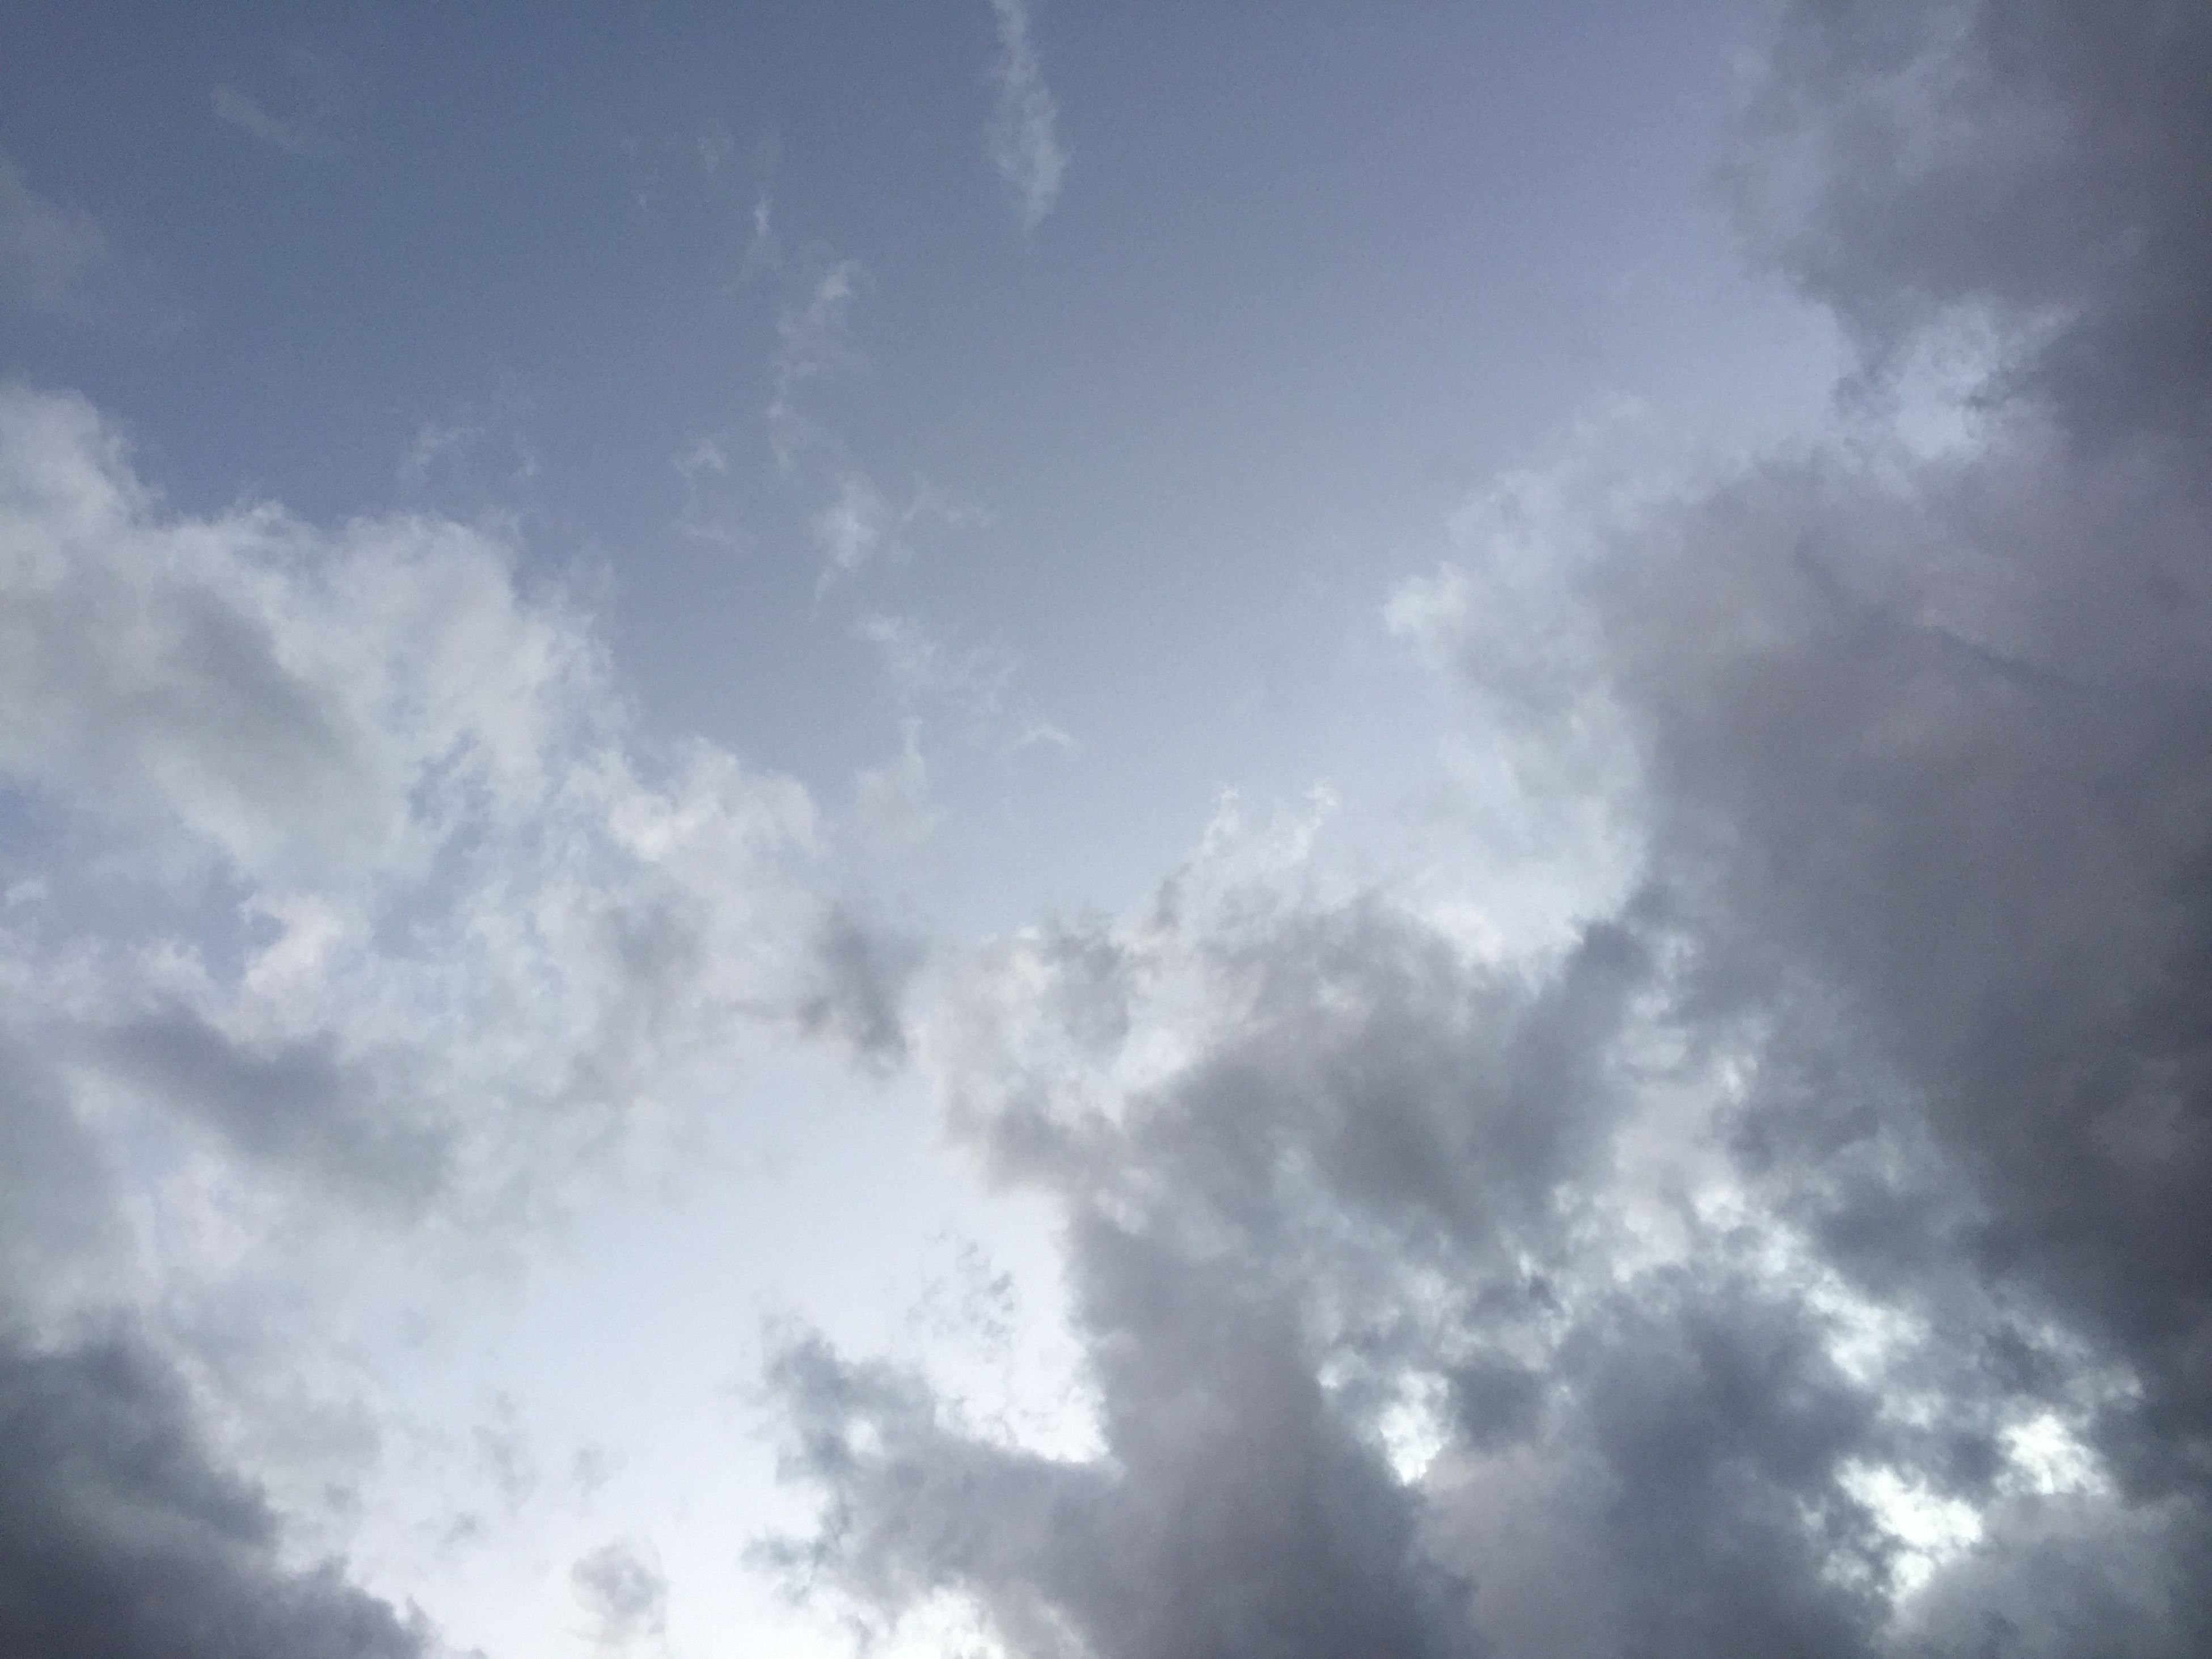 sky, low angle view, cloud - sky, sky only, beauty in nature, cloudy, tranquility, scenics, nature, cloudscape, tranquil scene, backgrounds, cloud, blue, full frame, idyllic, weather, outdoors, white color, day